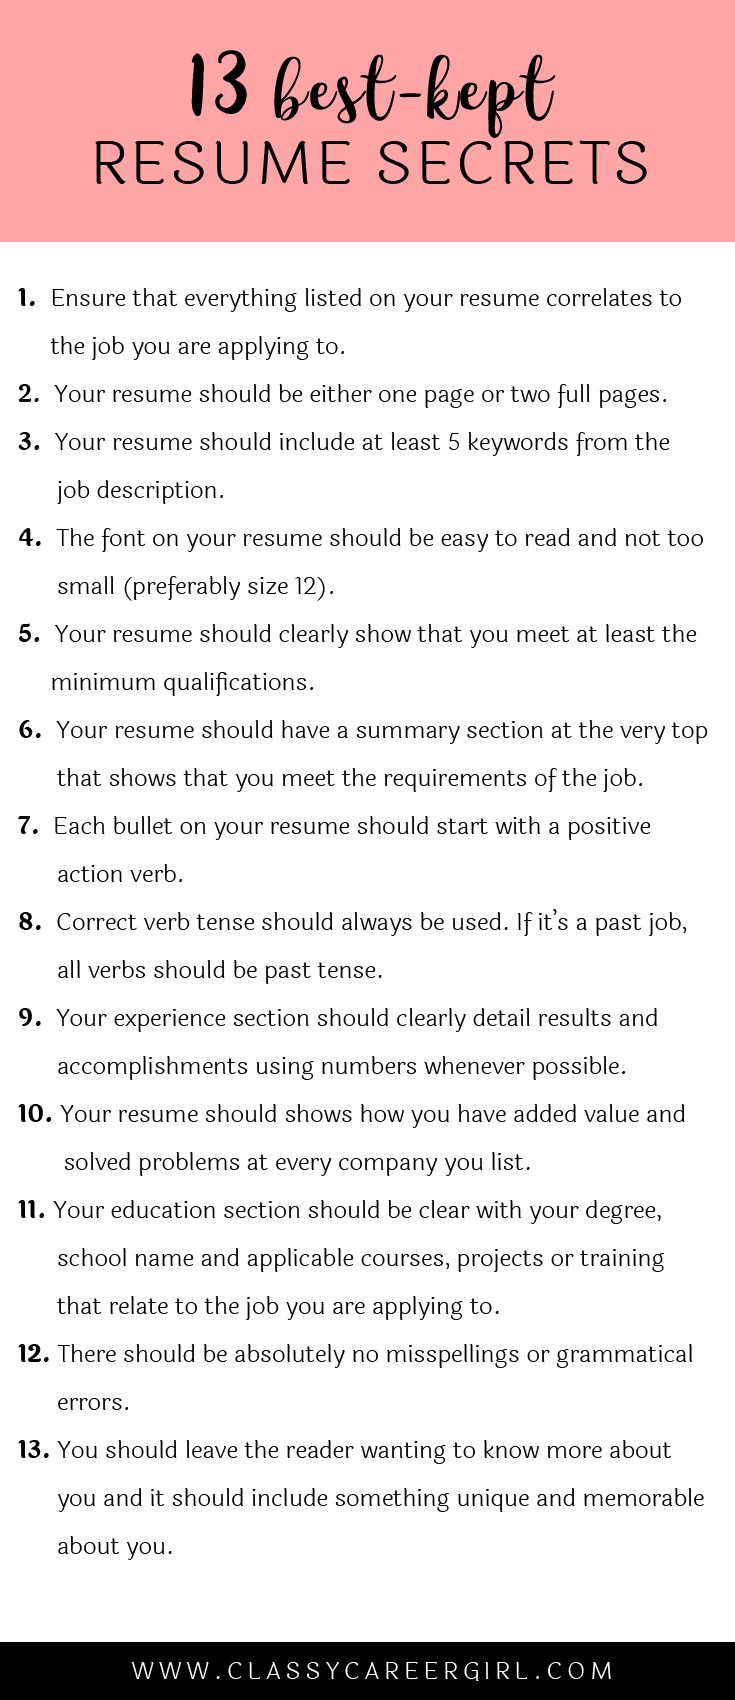 Opposenewapstandardsus  Picturesque  Ideas About Resume On Pinterest  Cv Format Resume Cv And  With Goodlooking Some Hiring Managers Will Toss Your Resume Out If You Dont Know These  With Endearing Short Resume Template Also Fast Learner Resume In Addition Resume Distribution And Pictures On Resumes As Well As Resume Services Cost Additionally Resume Objective Examples For Customer Service From Pinterestcom With Opposenewapstandardsus  Goodlooking  Ideas About Resume On Pinterest  Cv Format Resume Cv And  With Endearing Some Hiring Managers Will Toss Your Resume Out If You Dont Know These  And Picturesque Short Resume Template Also Fast Learner Resume In Addition Resume Distribution From Pinterestcom